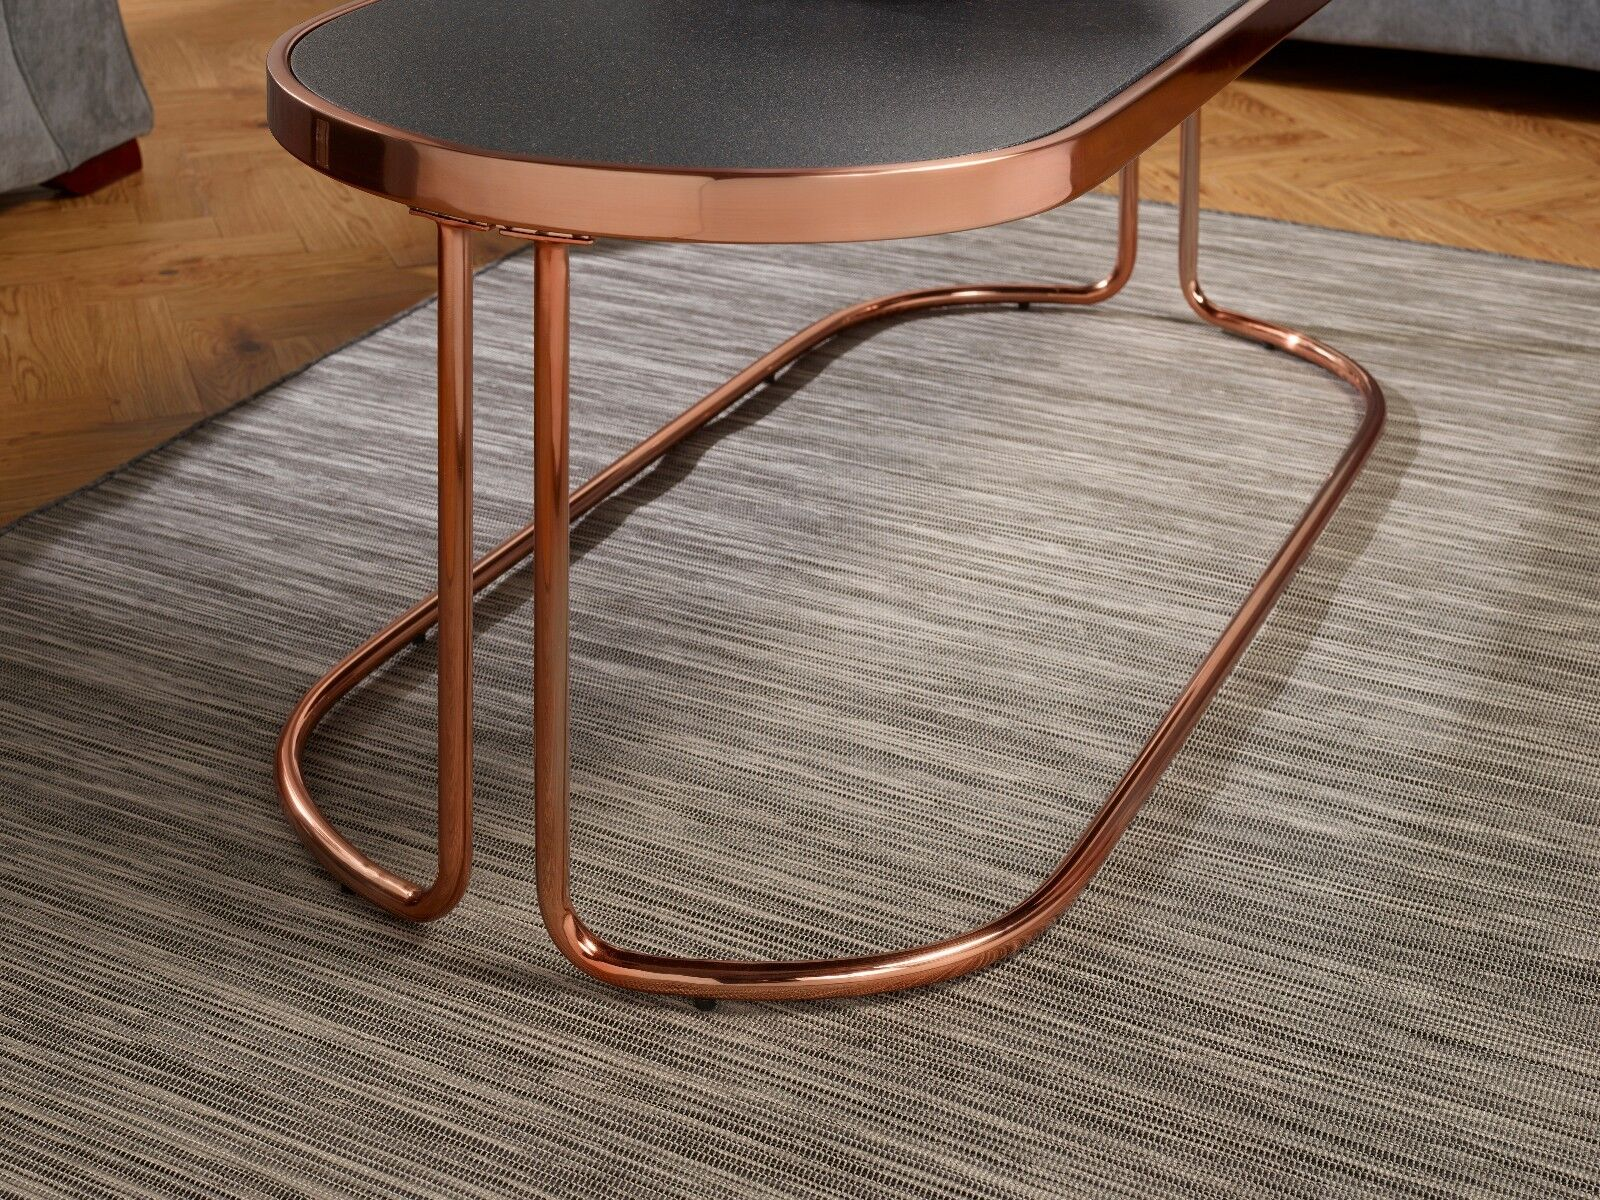 Zion Glass Top Coffee Table with Stone Effect Top and Metal Rose